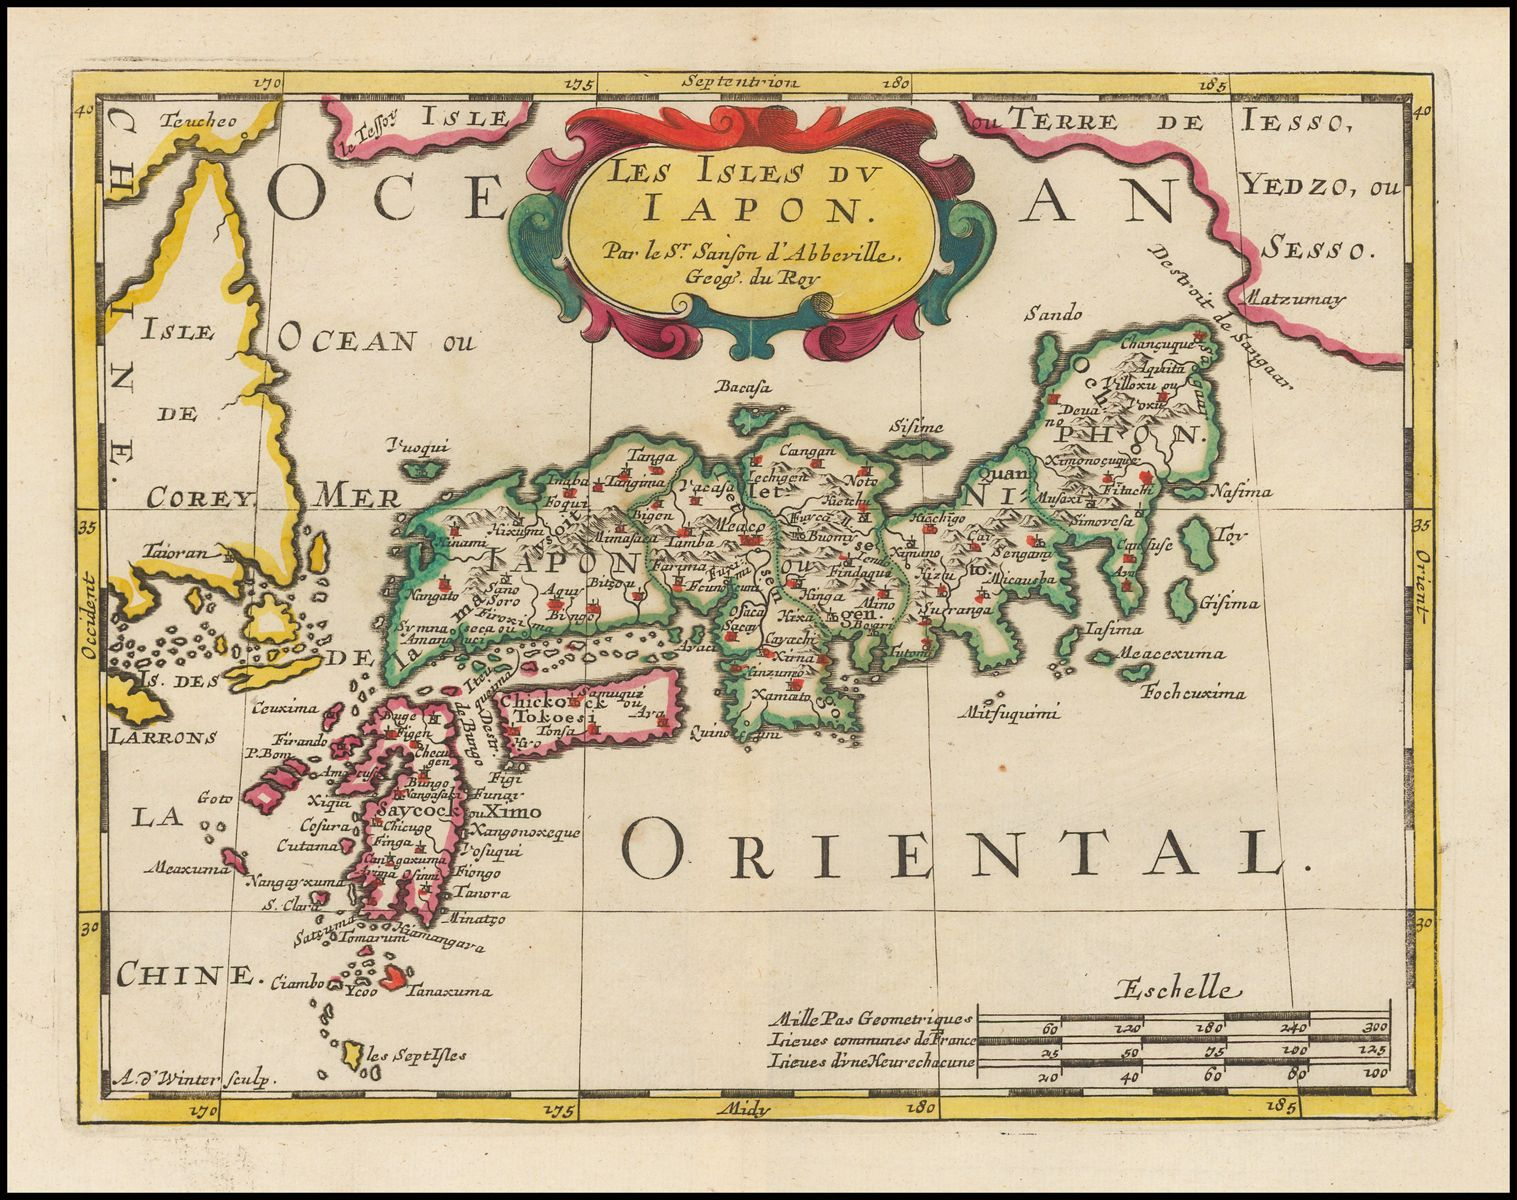 Nicholas sanson 1651 1683 fine old color example of sansons map 1651 1683 fine old color example of sansons map of japan and the island of corey korea the configuration of korea is quite unusual gumiabroncs Image collections